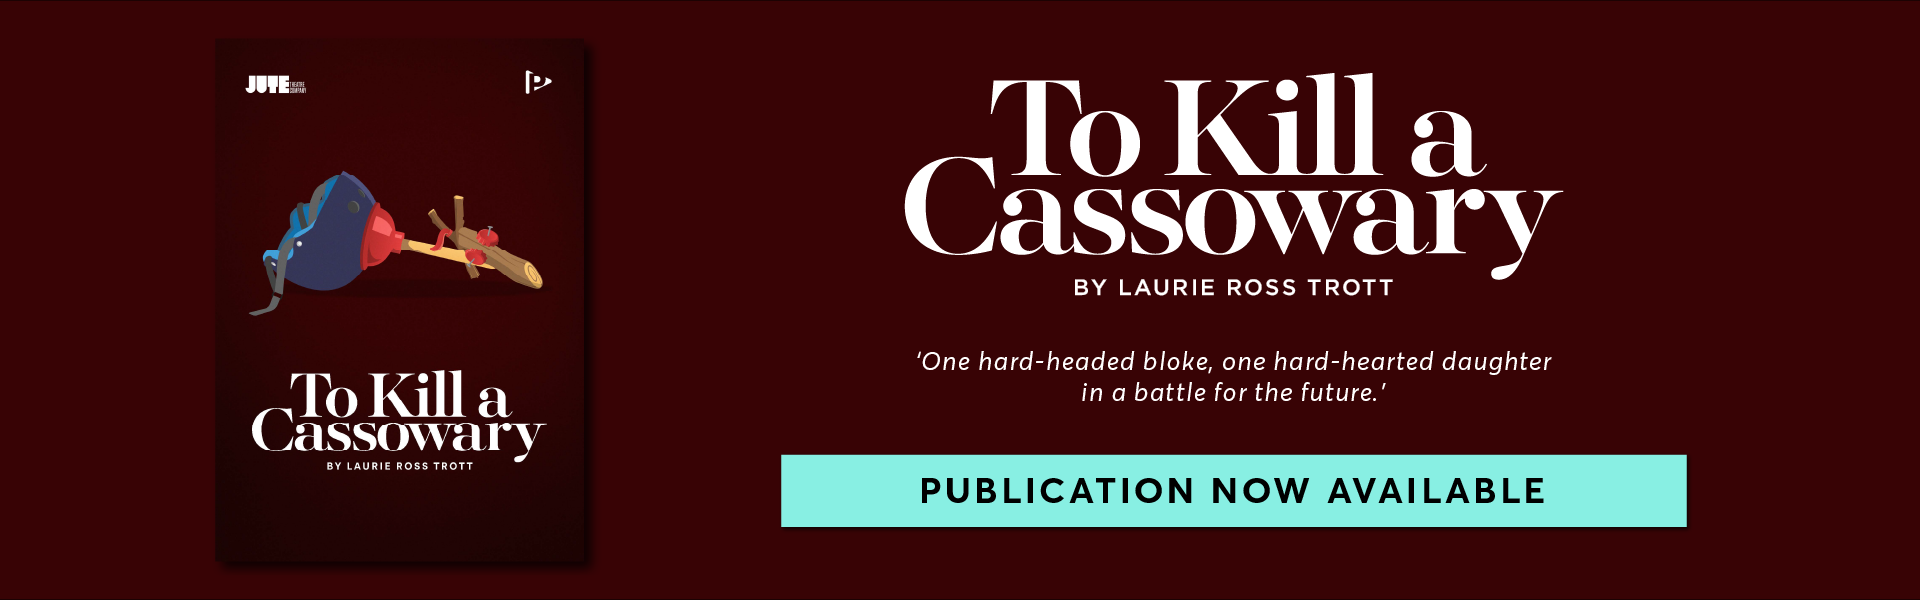 To Kill a Cassowary by Laurie Ross Trott